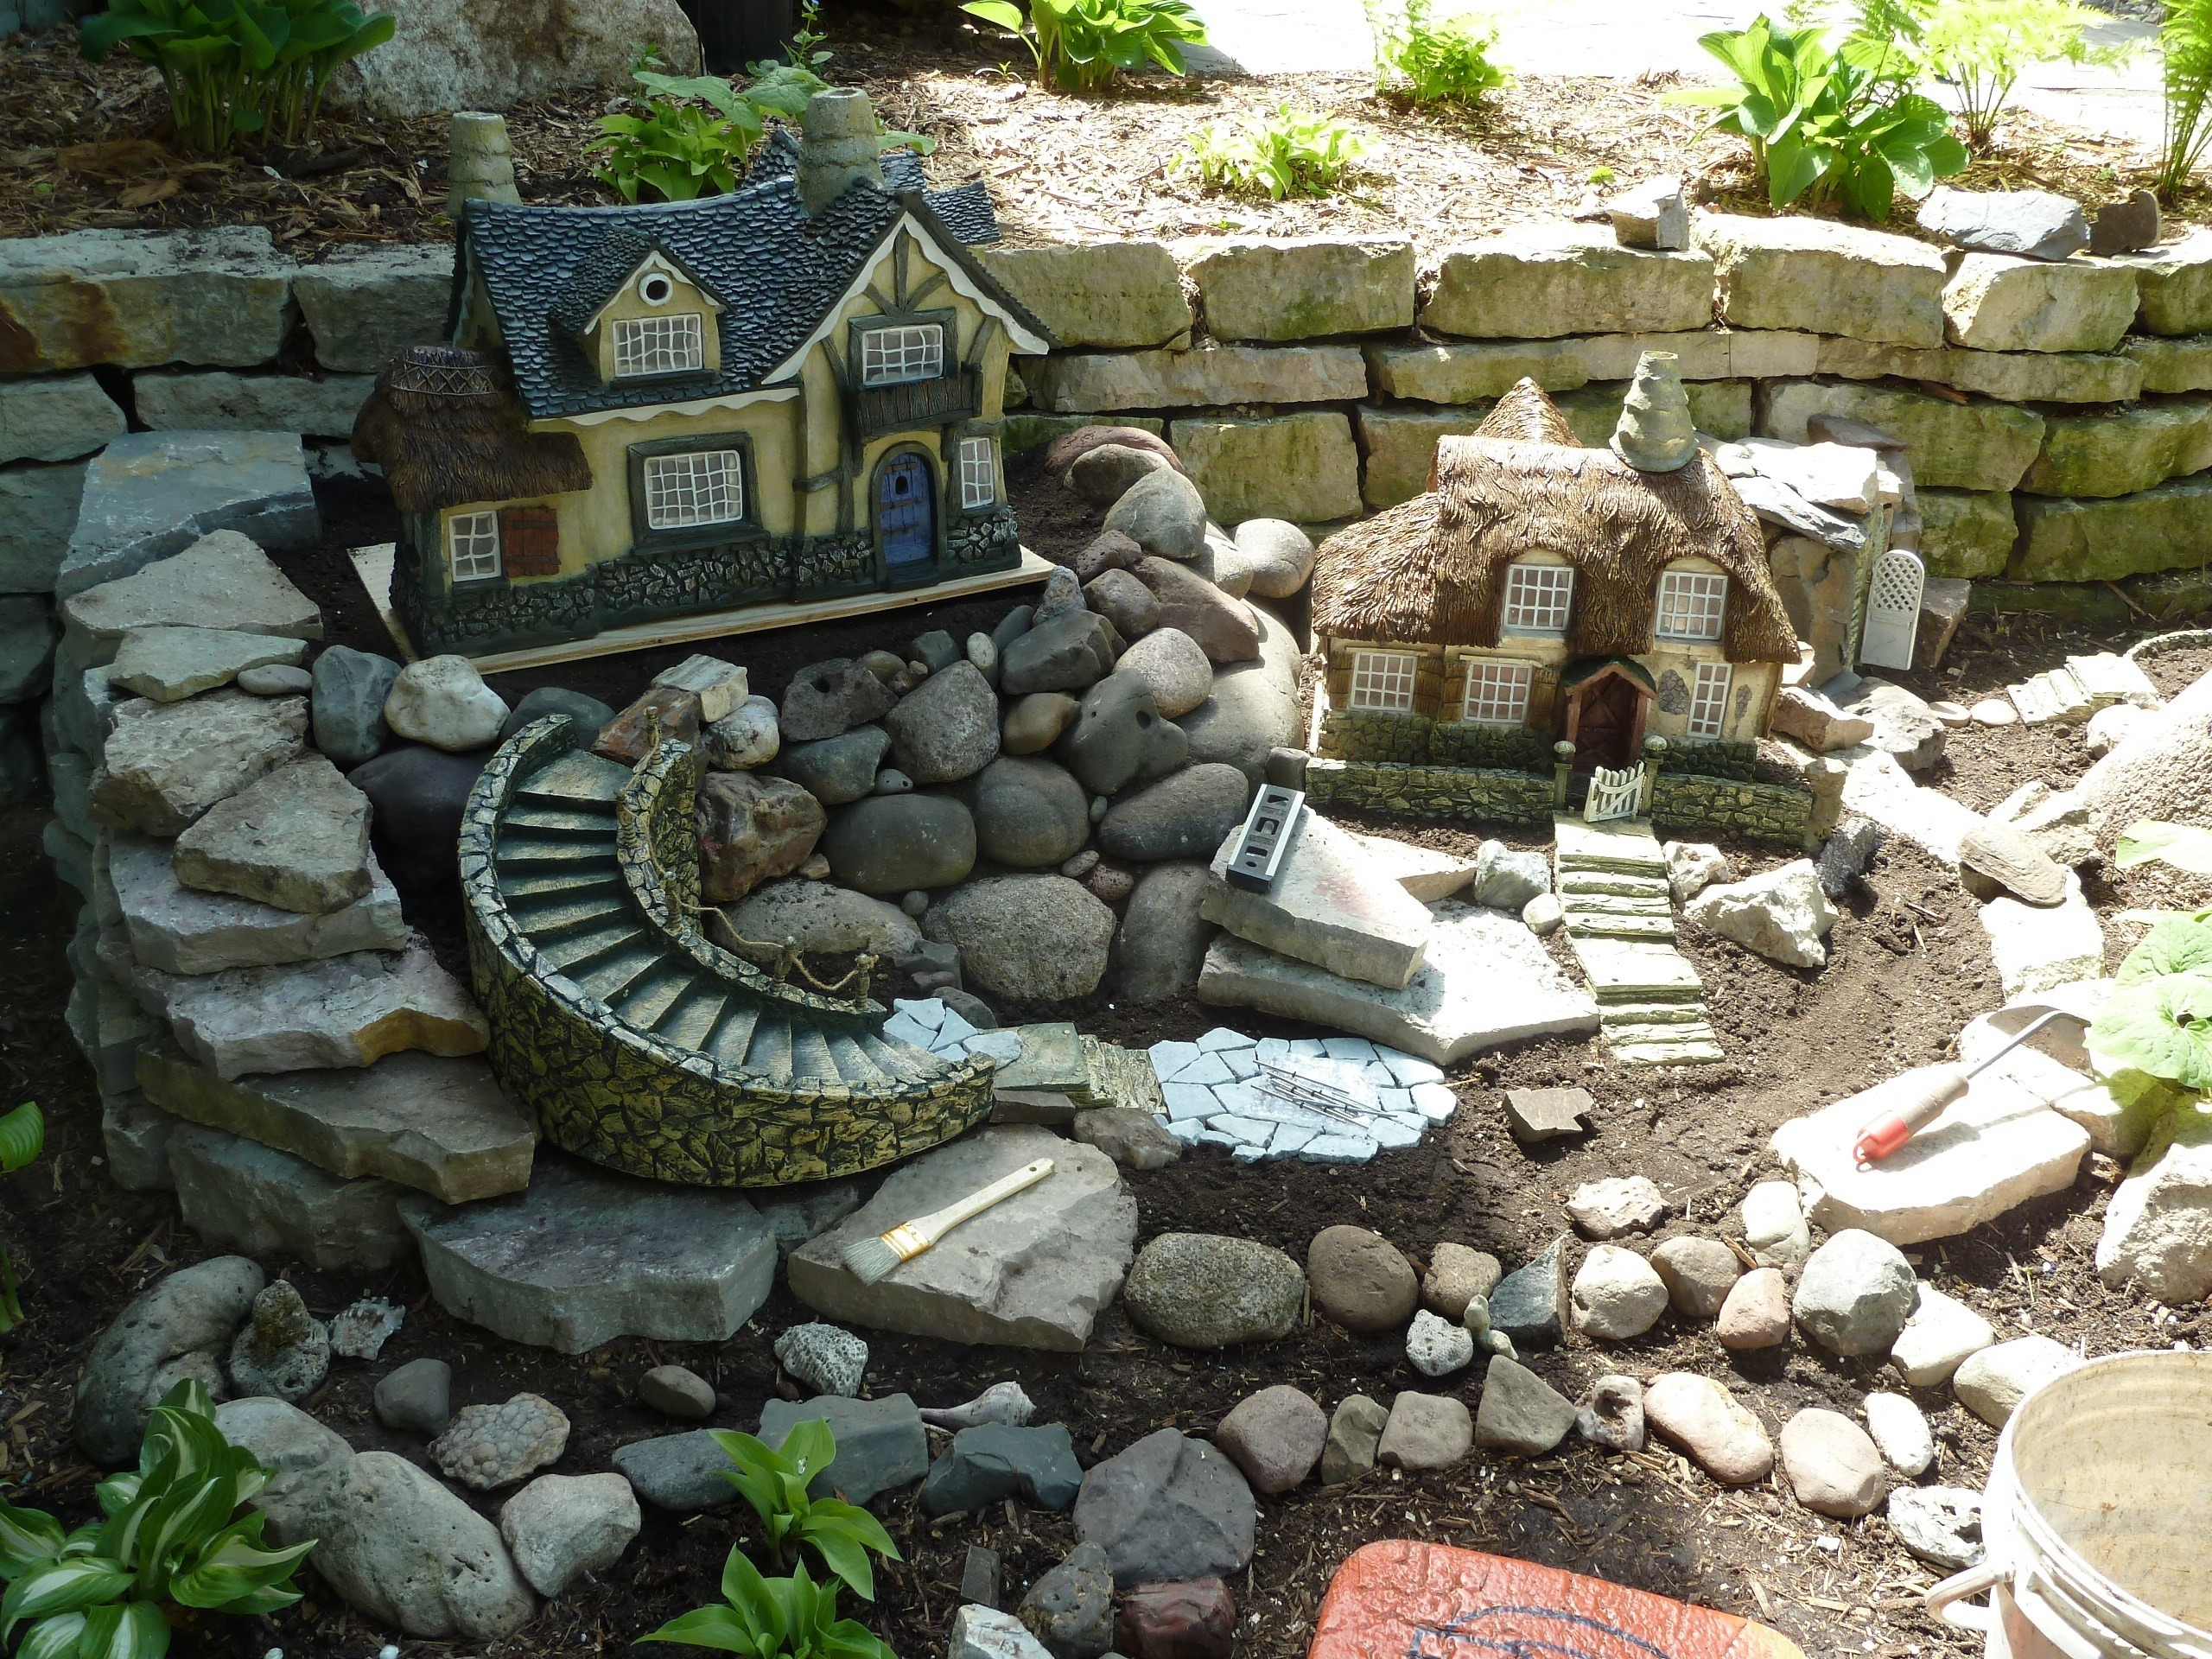 diy-miniature-stone-houses-8